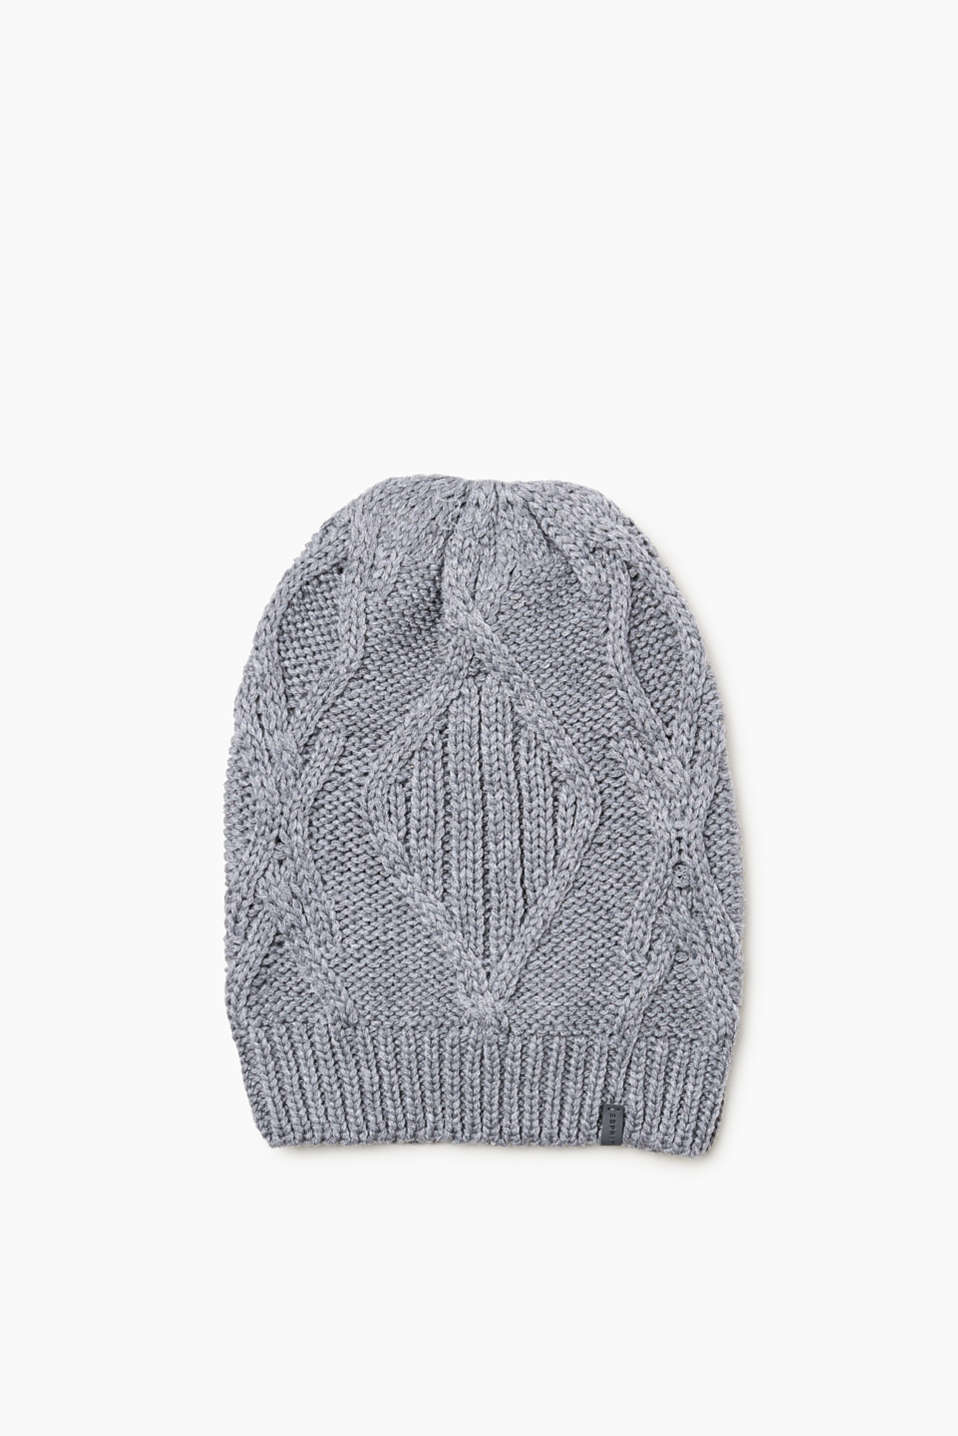 We love knitwear! This beanie made of premium yarn with a cable pattern is no exception.